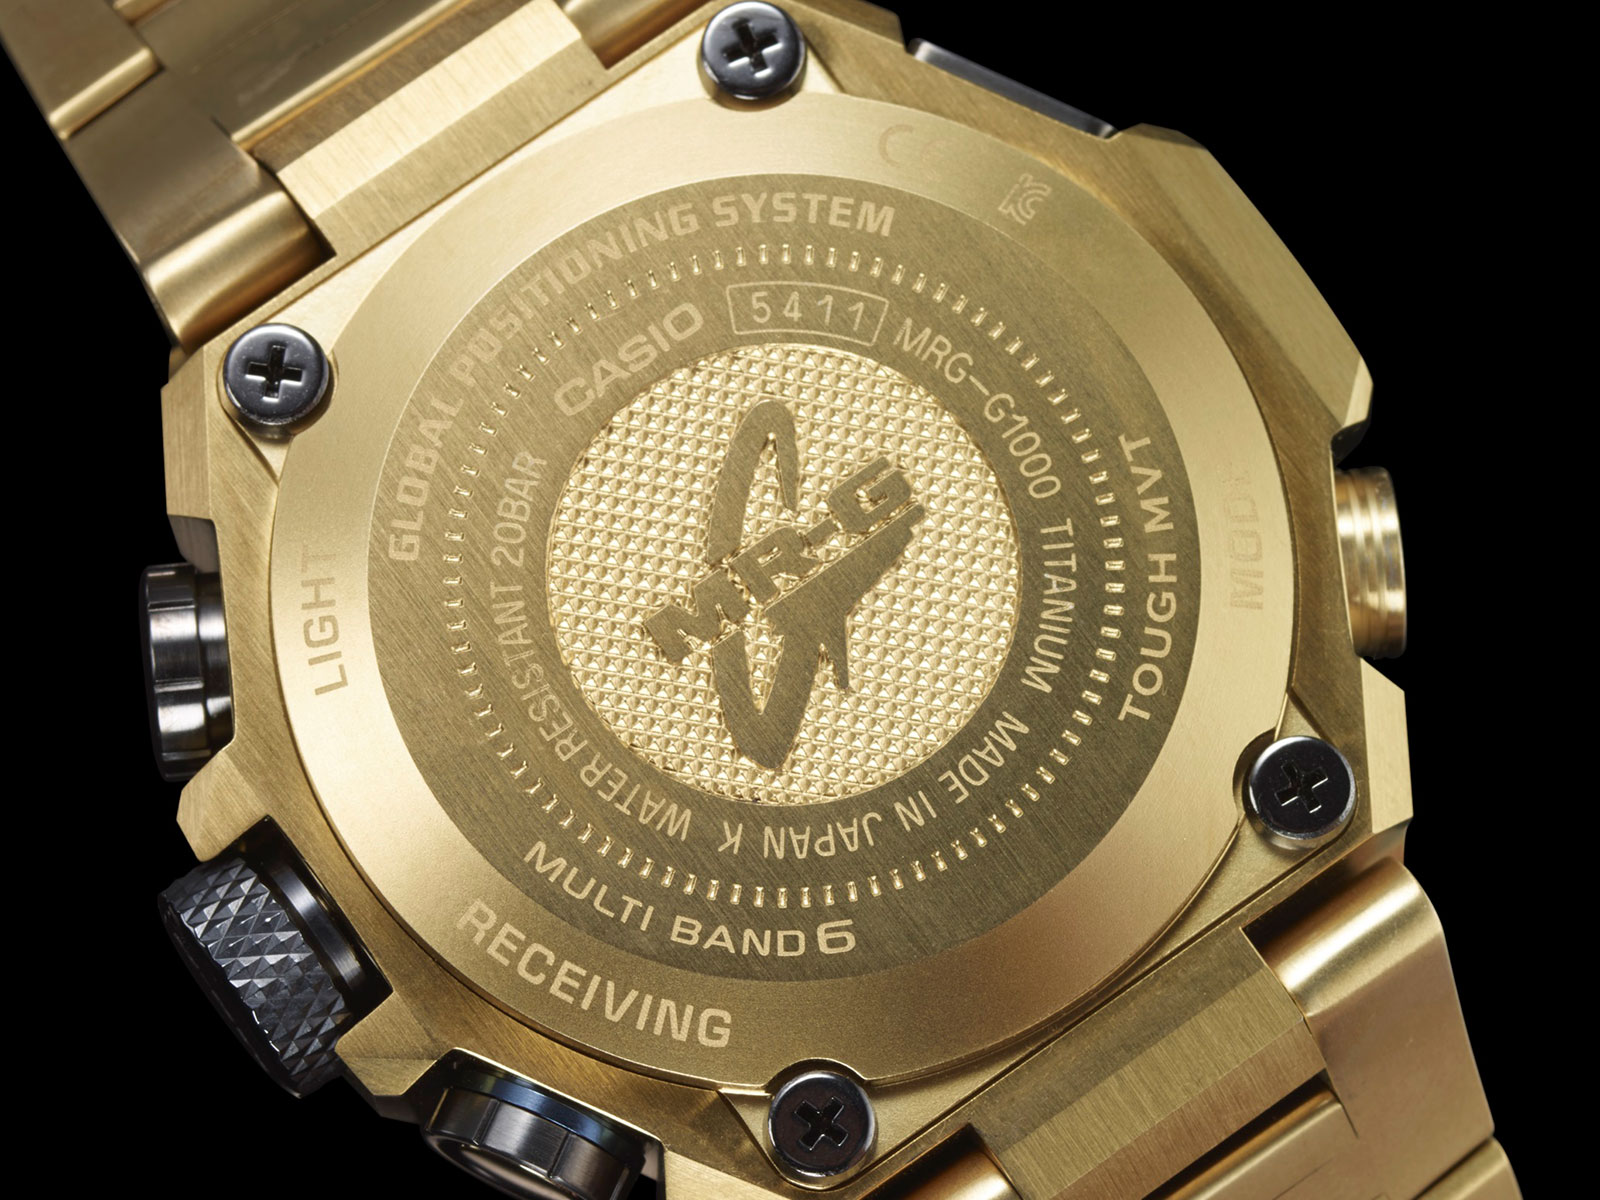 Casio G-Shock MR-G Gold Hammer Tone 6